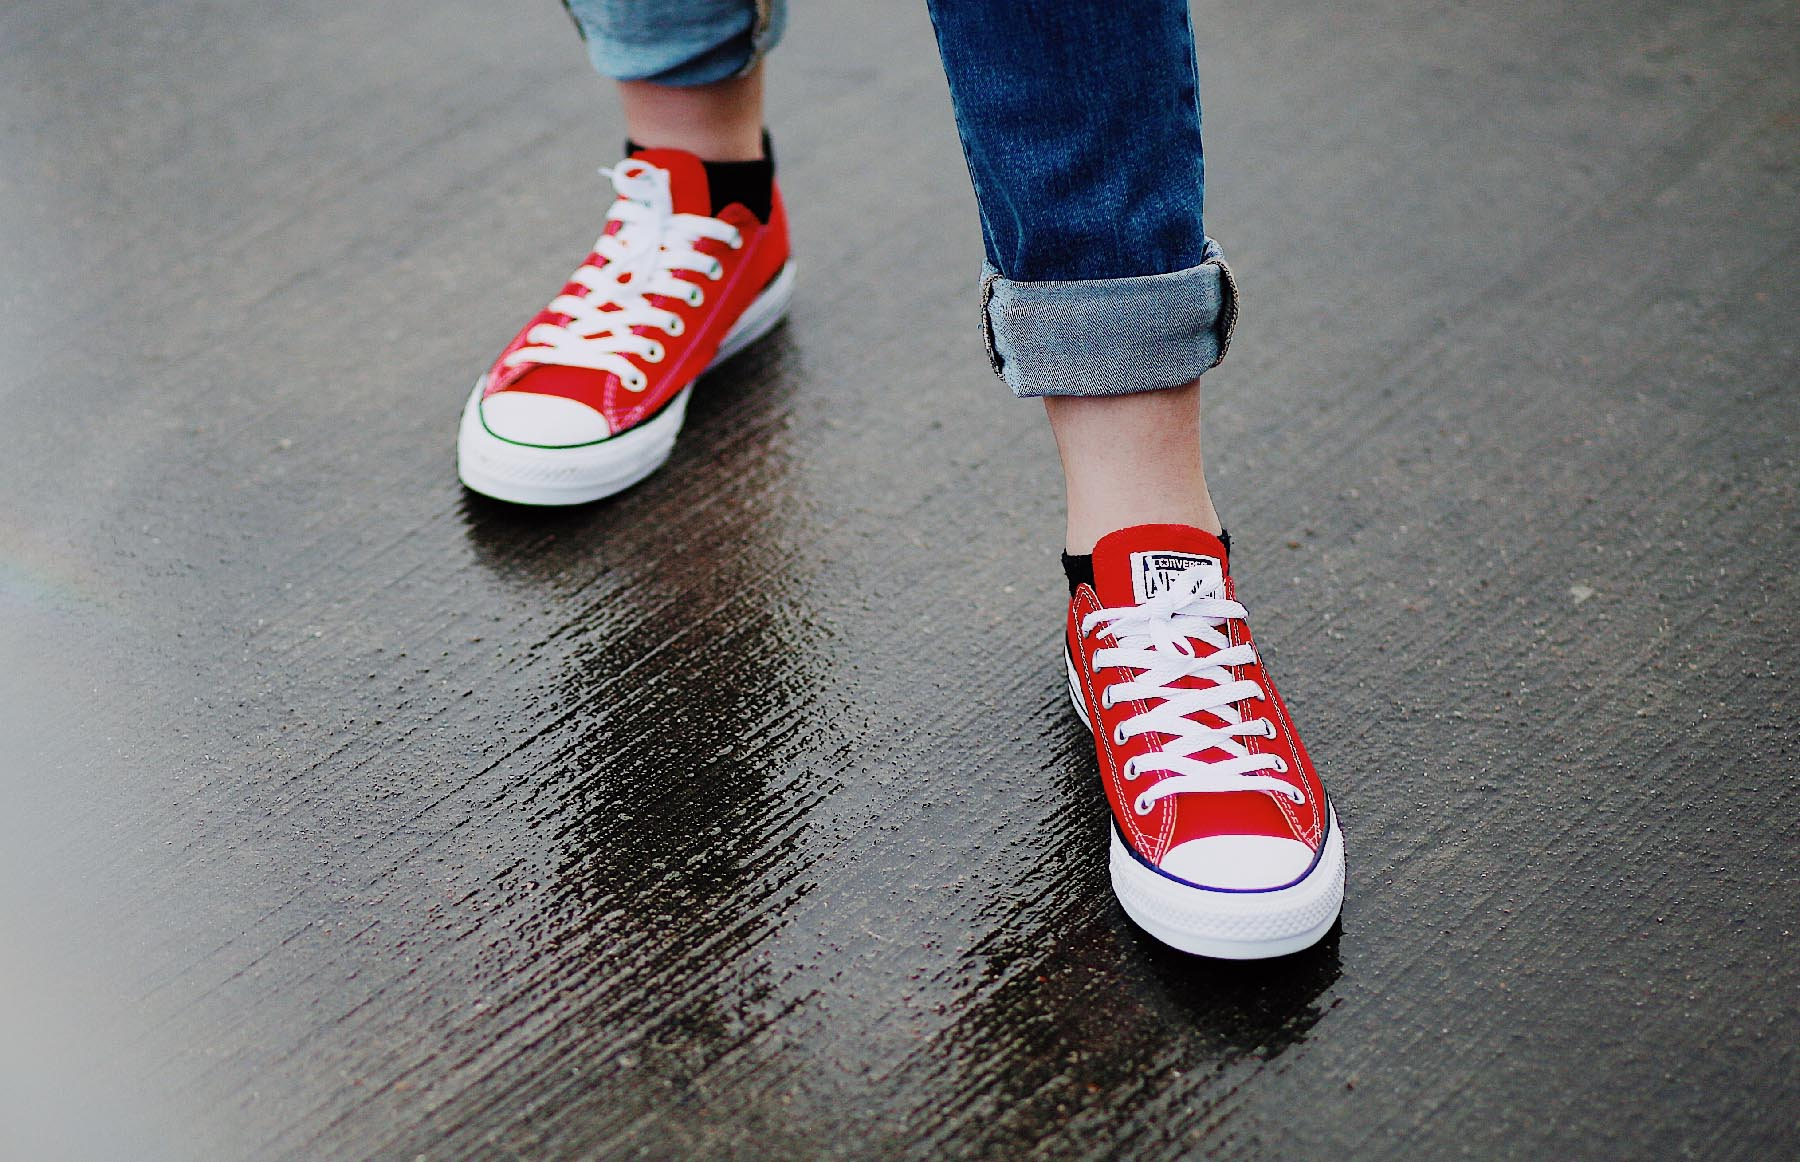 Red Shoes Rock! FASD Awareness Campaign